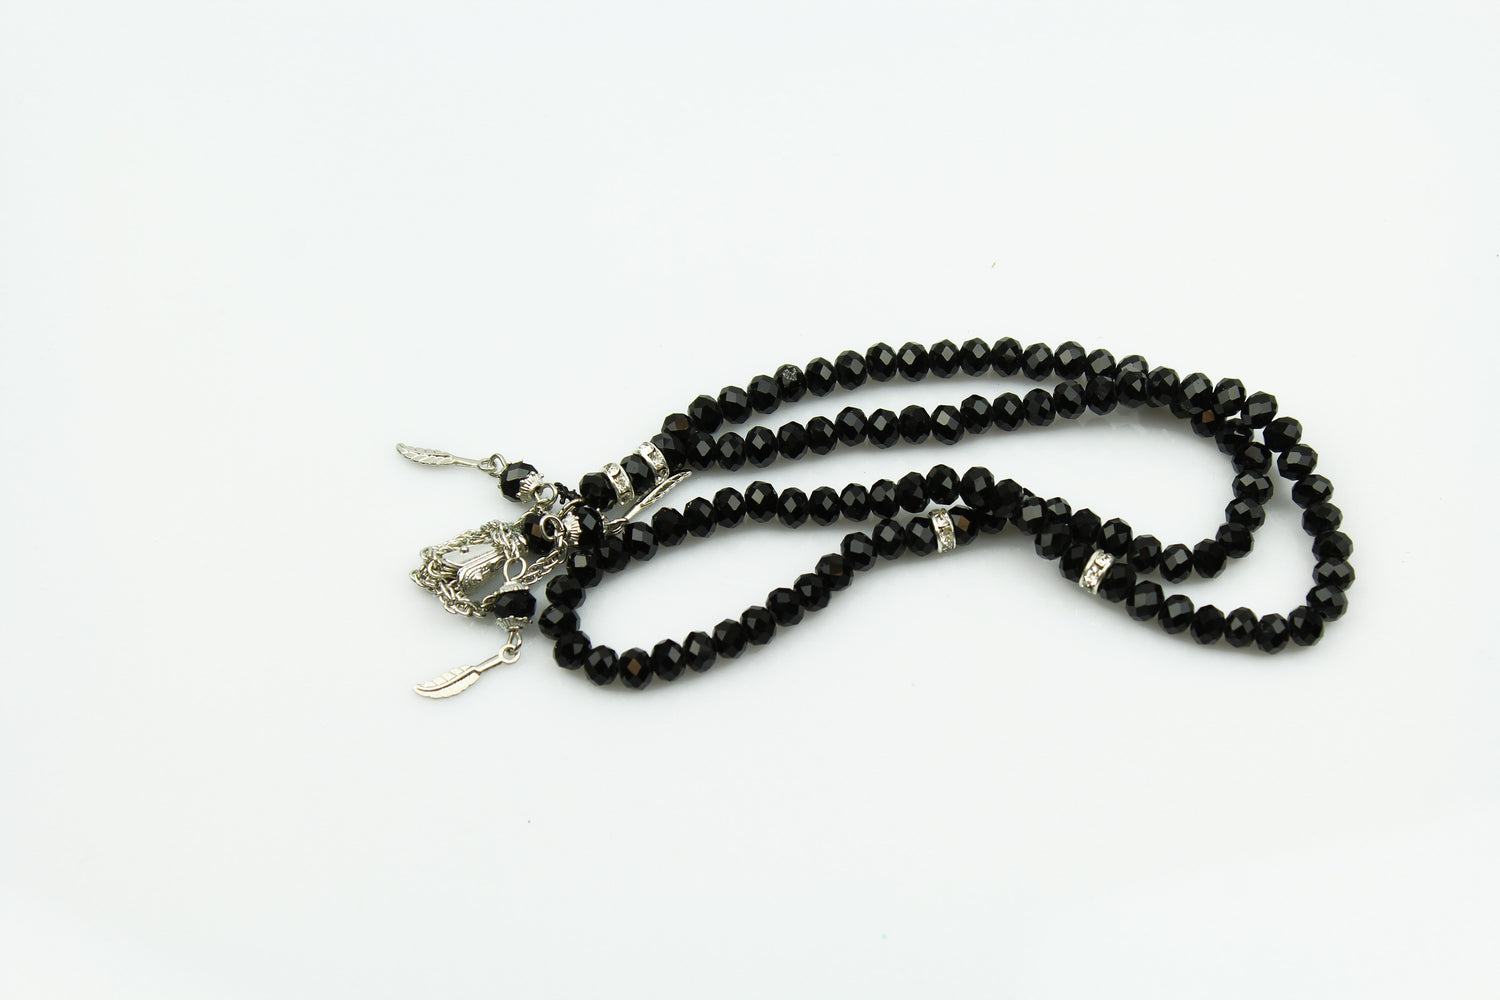 Crystal Tasbeeh (99 beads) - Black